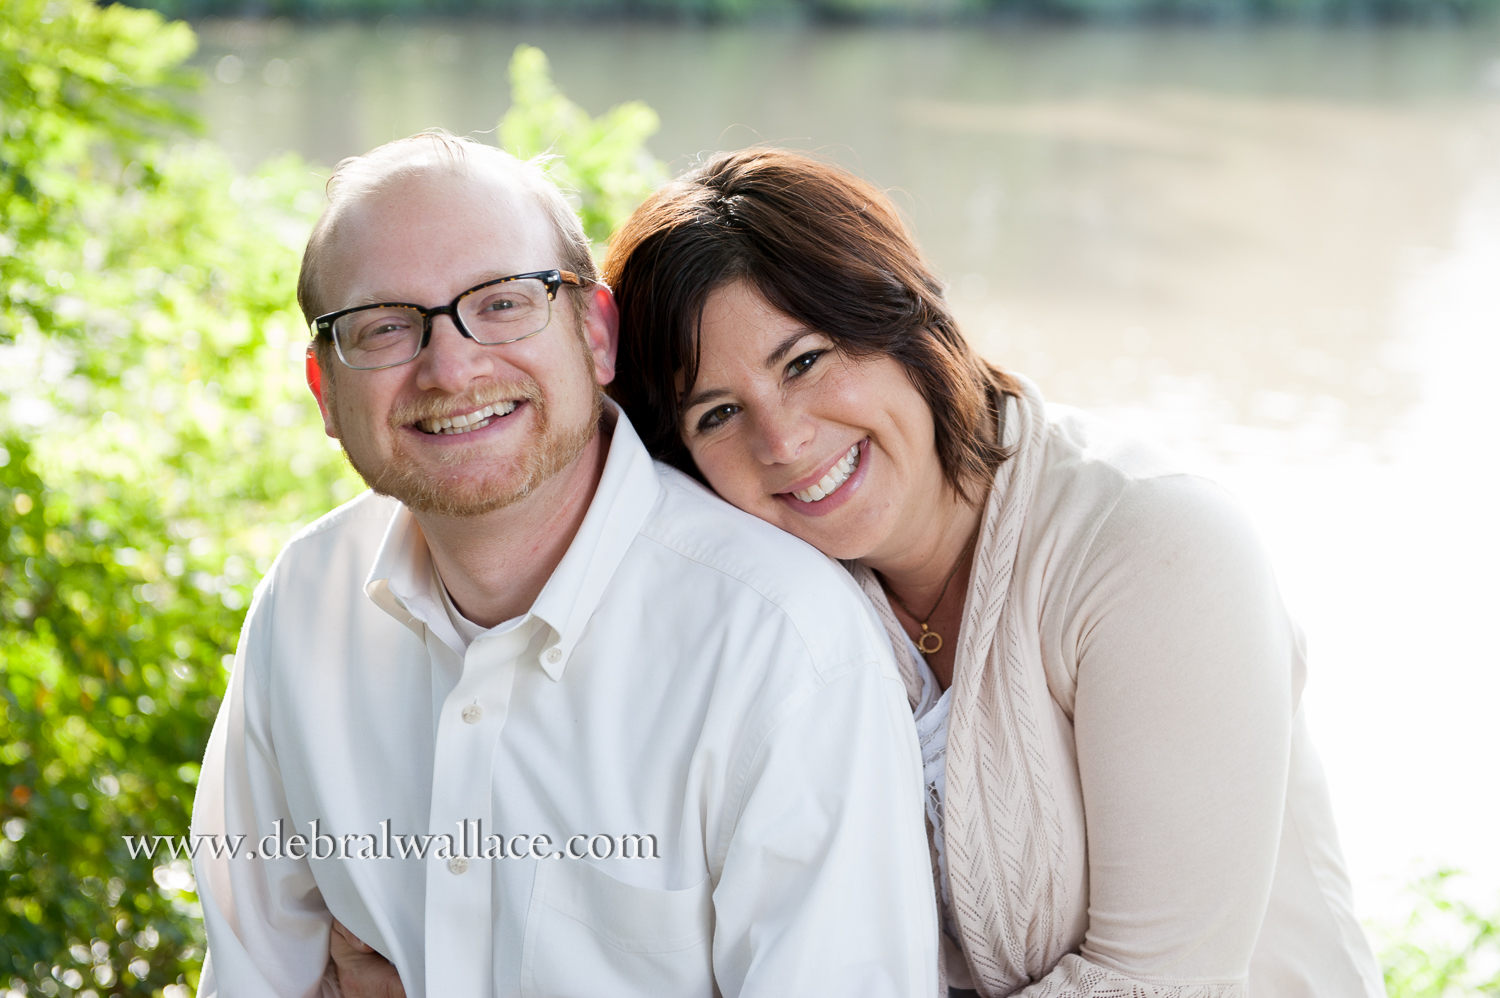 Genesee valley park family mini sessions-0118